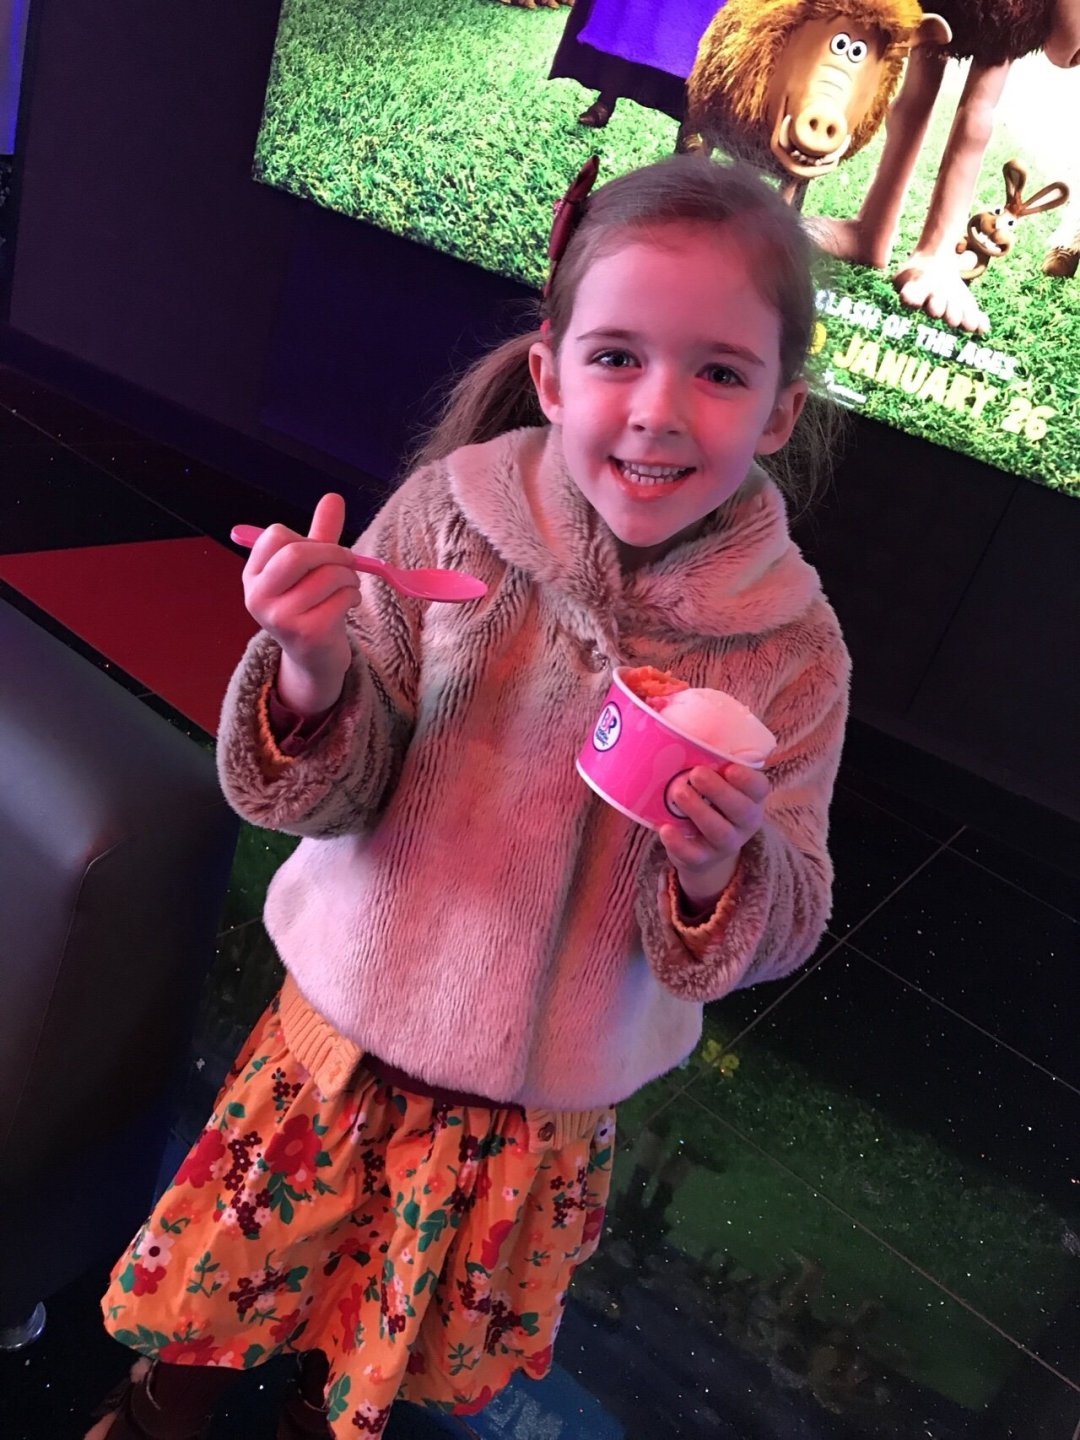 Eden with her ice cream at the cinema